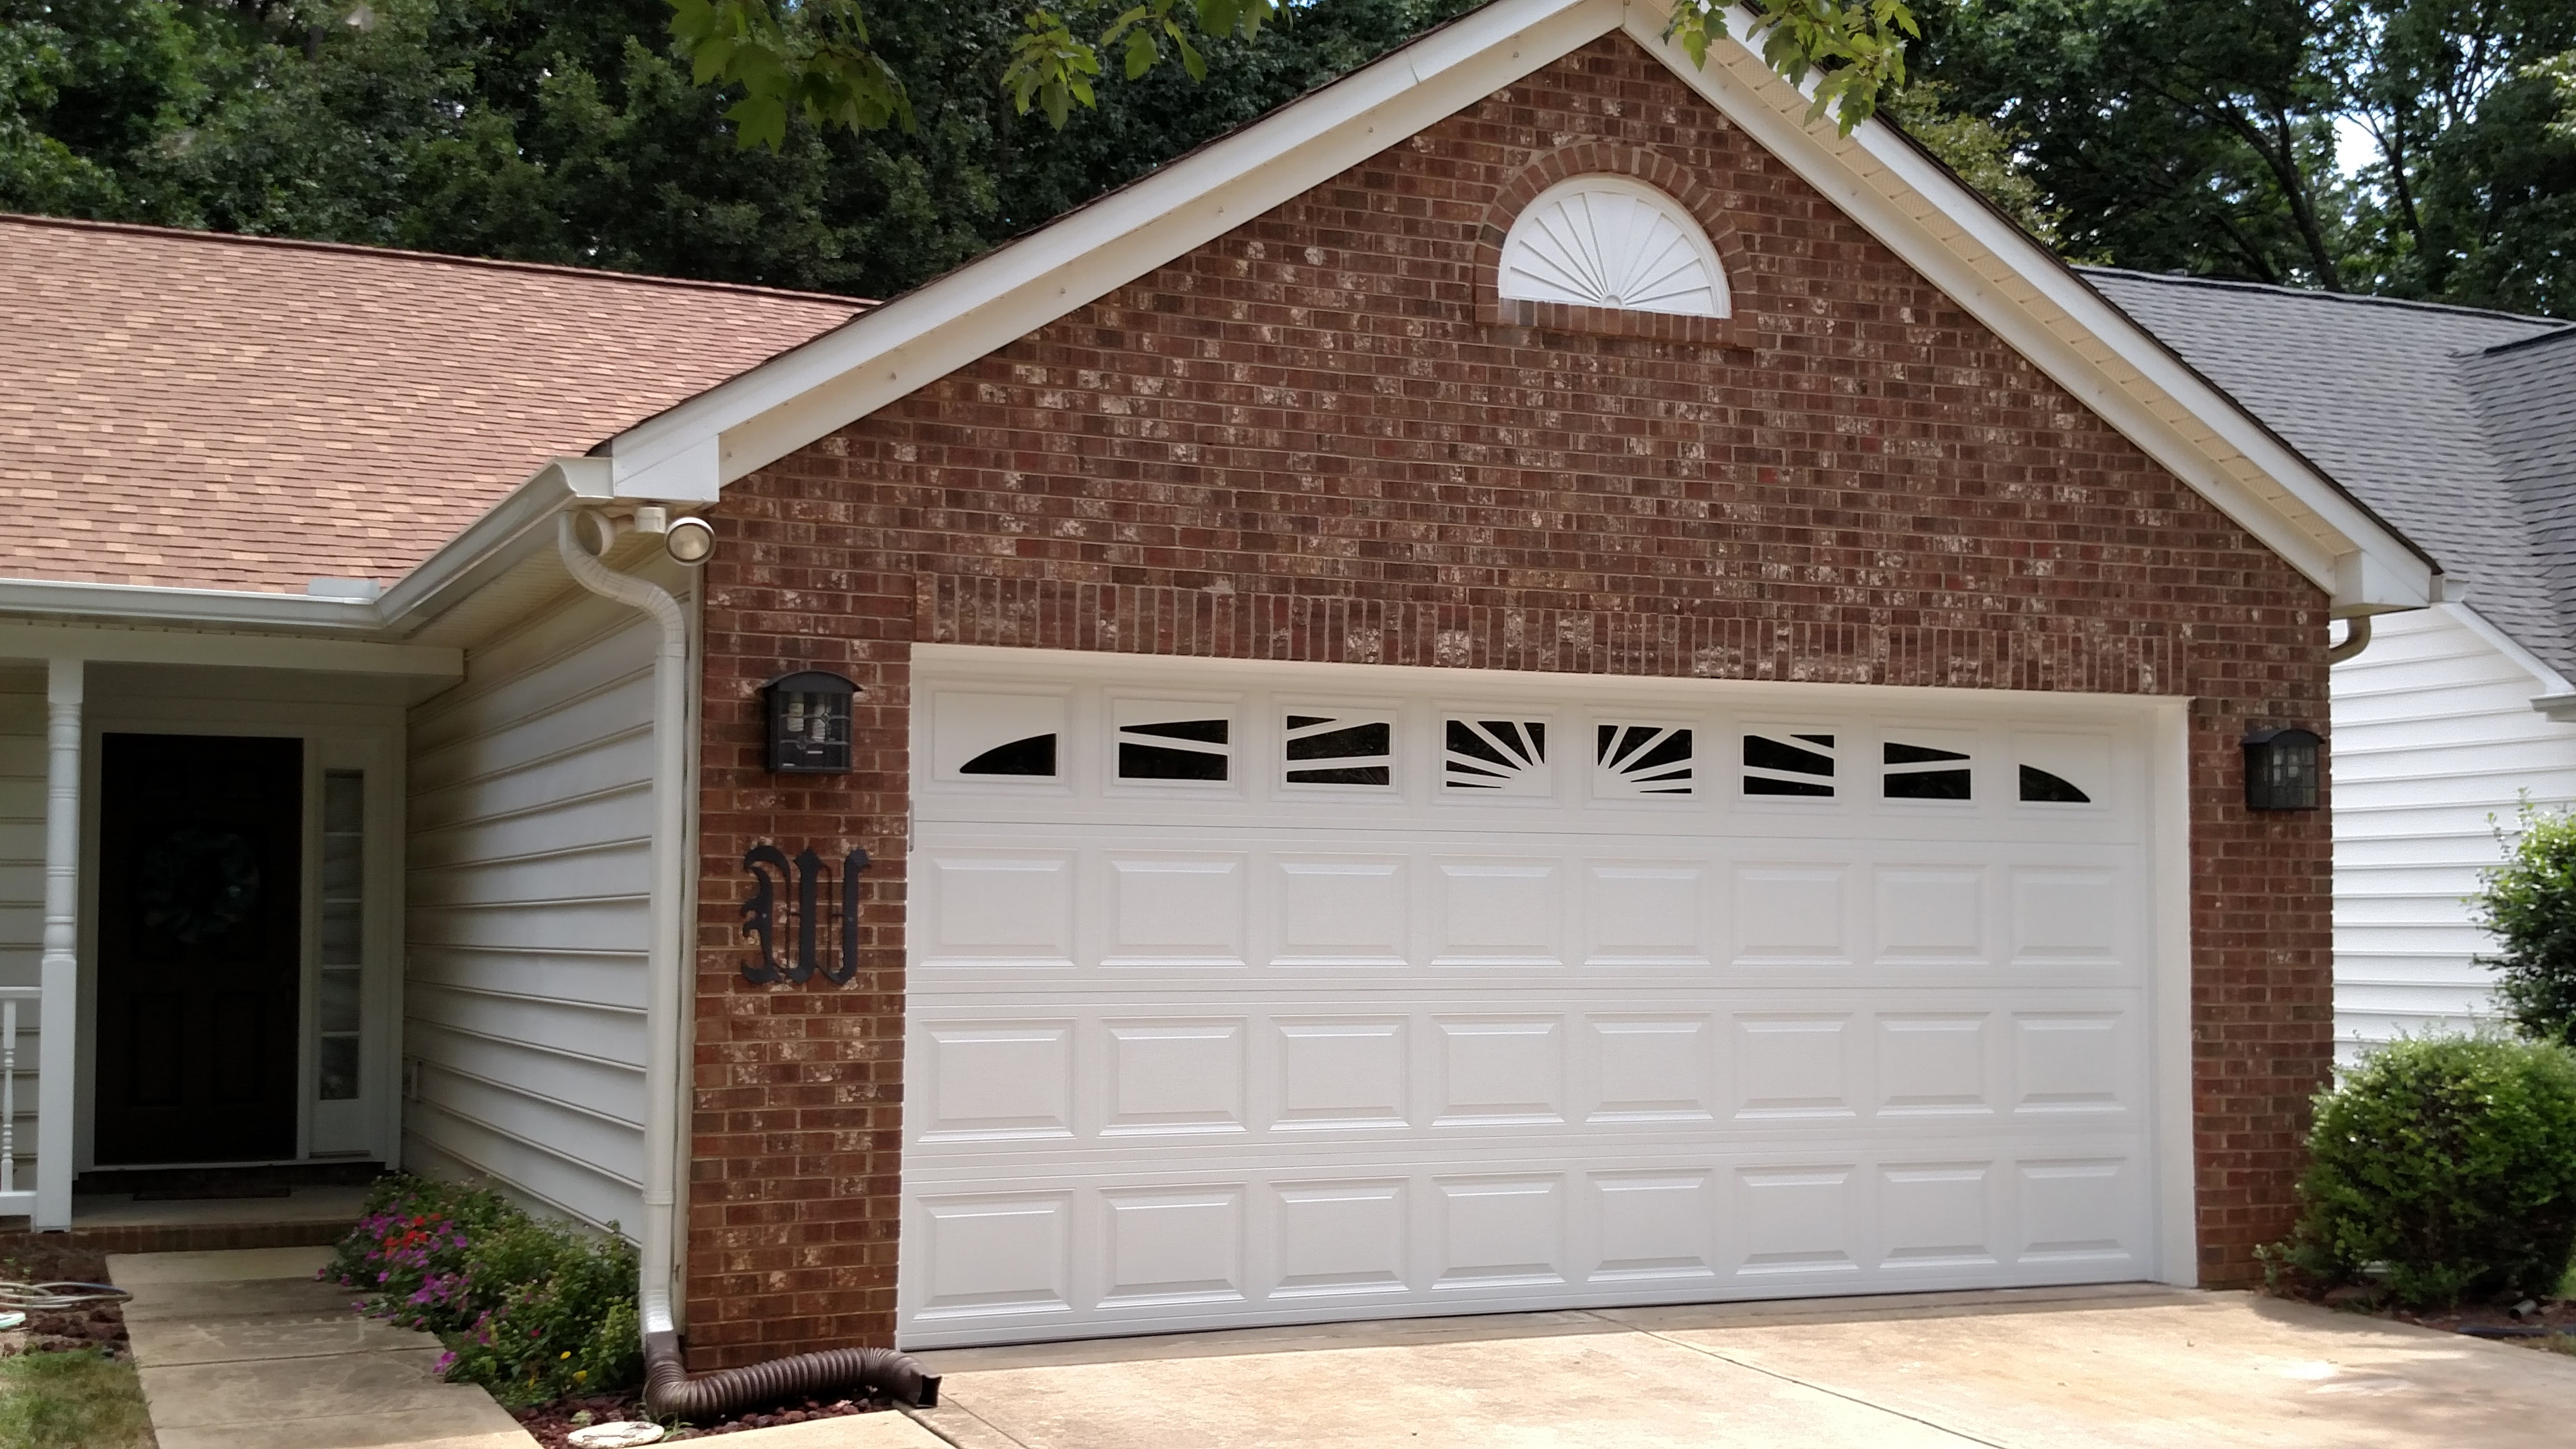 Garage doors and more charlotte nc gallery door design ideas home ncg doors with over 25 years of experience in the garage industry nc garage doors rubansaba